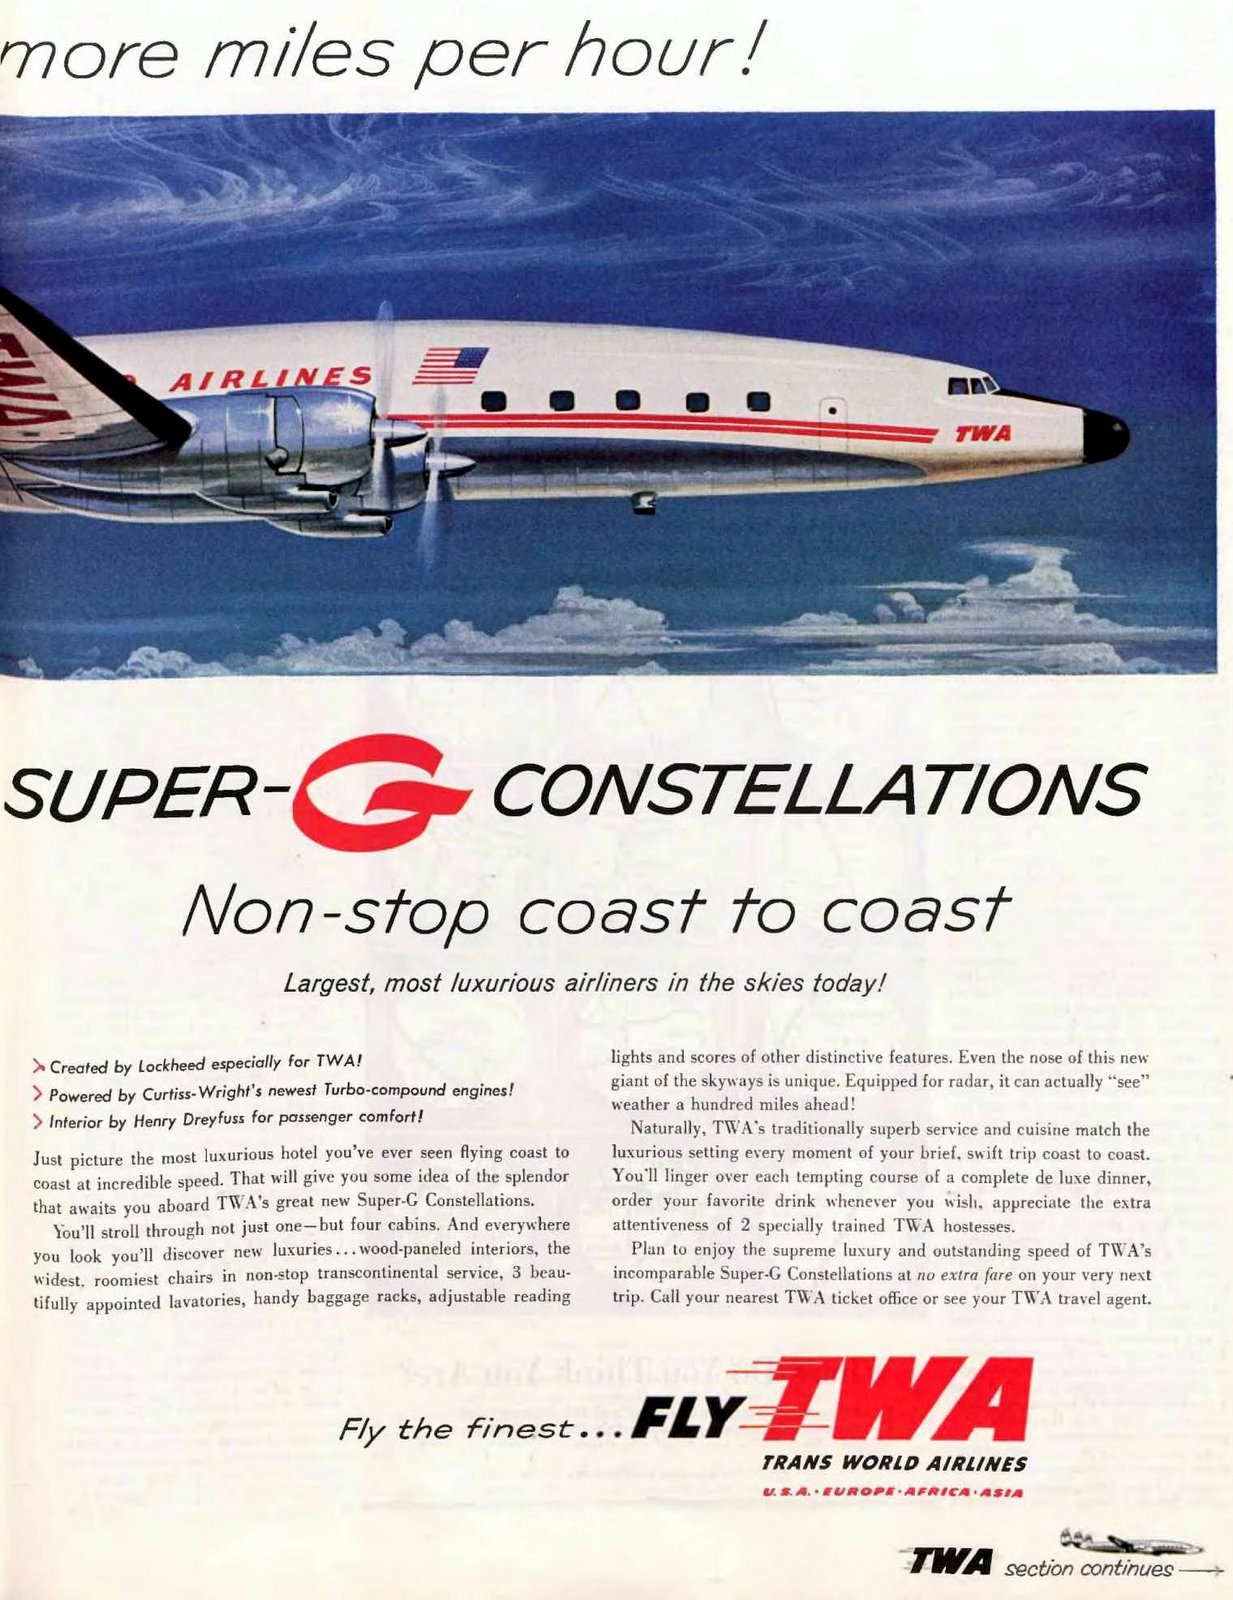 TWA's Super G Constellation aircraft from 1955 (1)